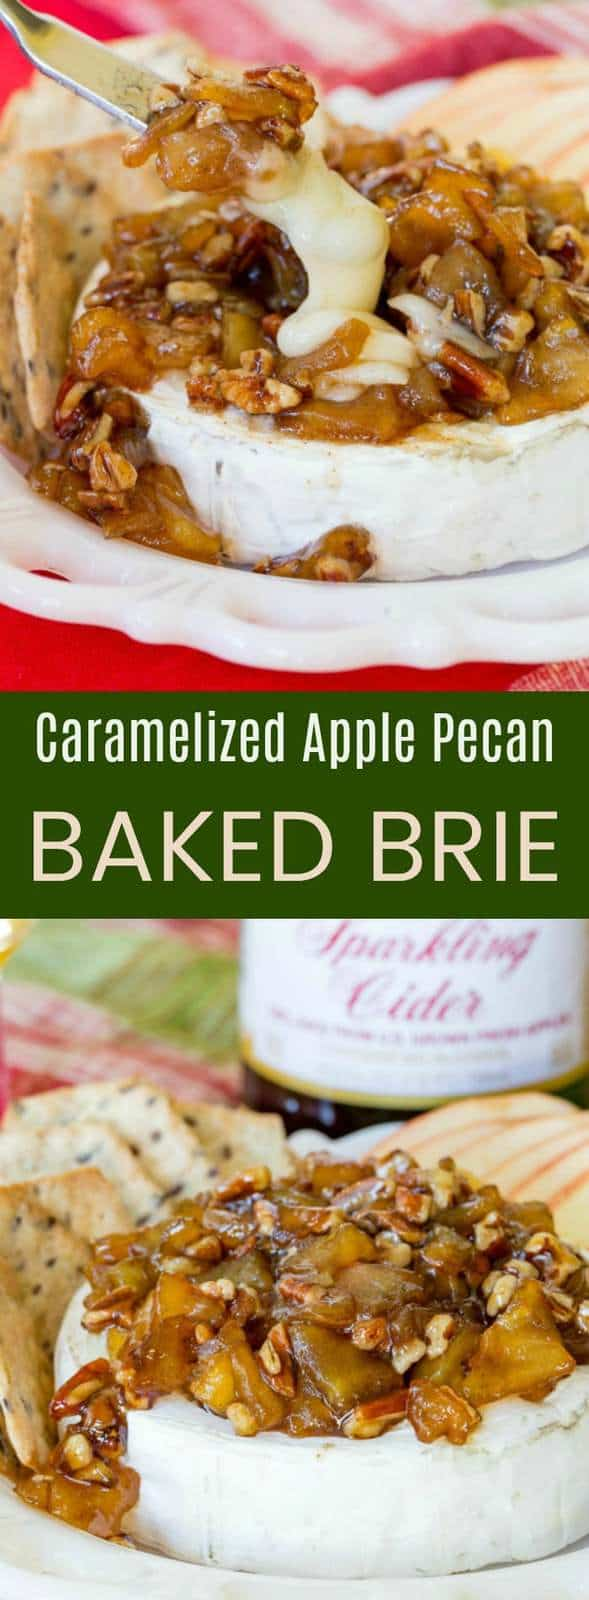 Caramelized Apple Pecan Baked Brie recipe is a quick and easy cheesy appetizer that makes a great addition to your party menu! Celebrate with @martinellisco! #AD #brie #cheese #bakedbrie #glutenfree #appetizerrecipe